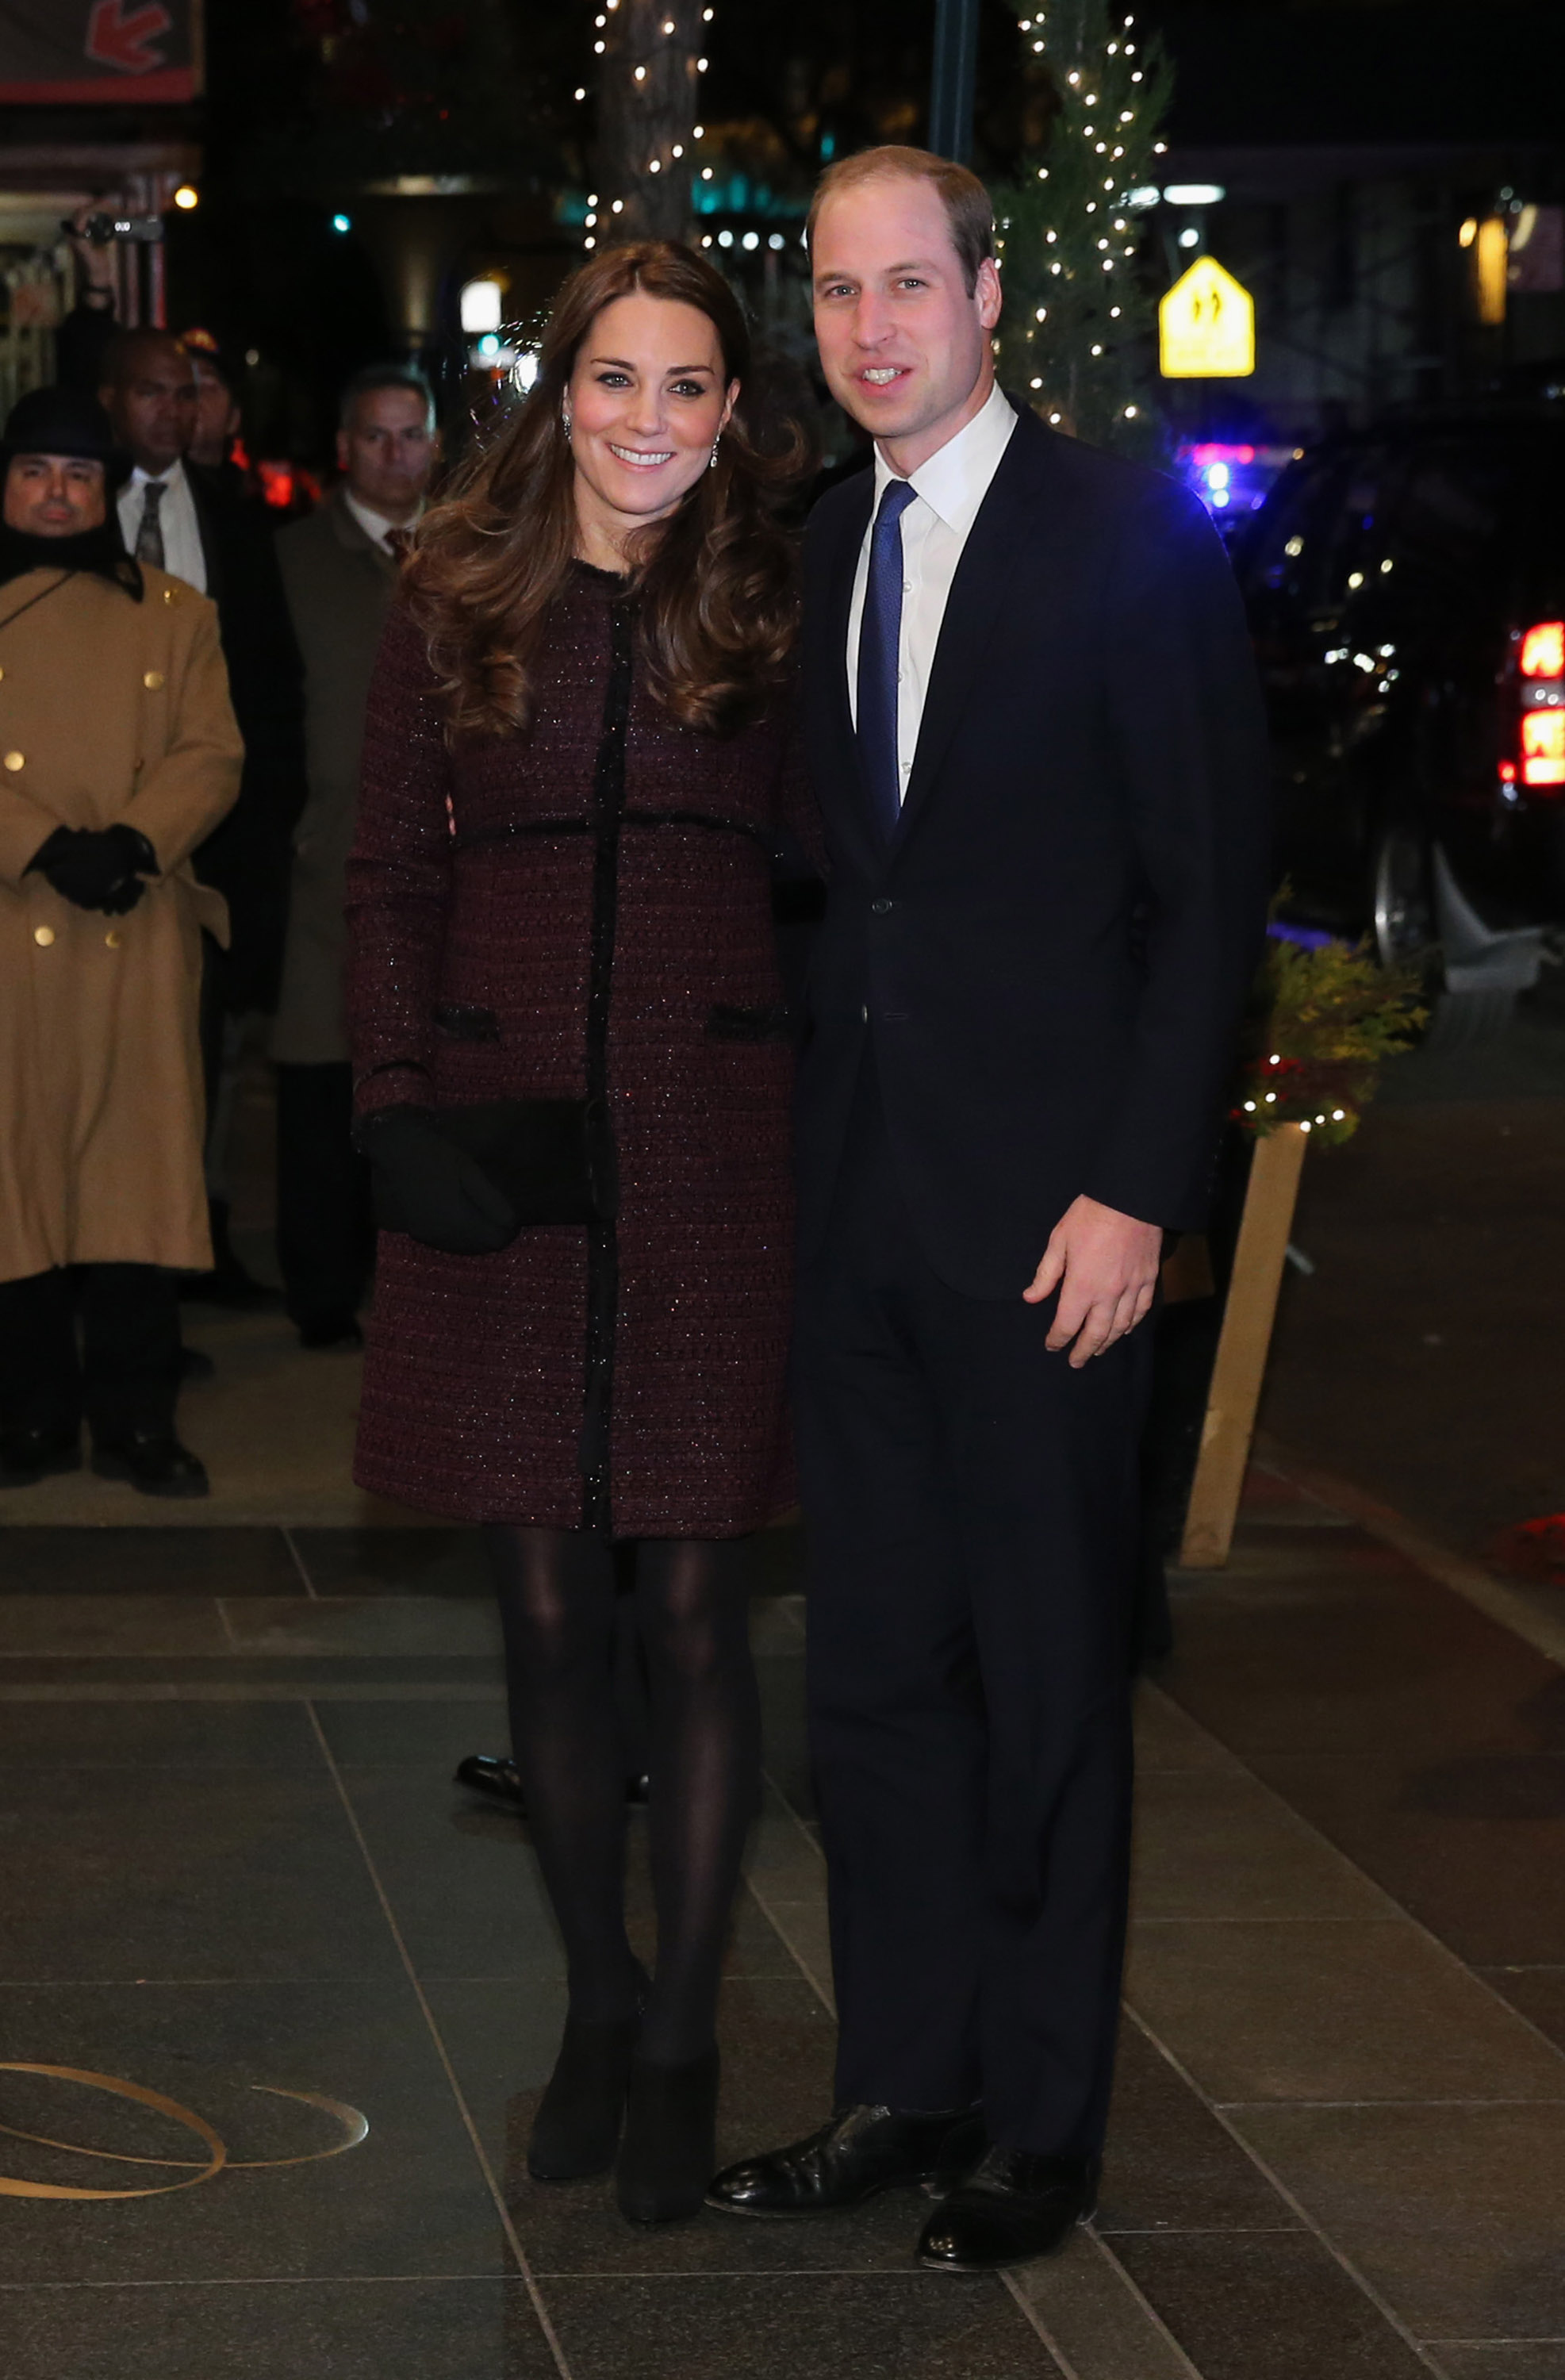 william kate nyc